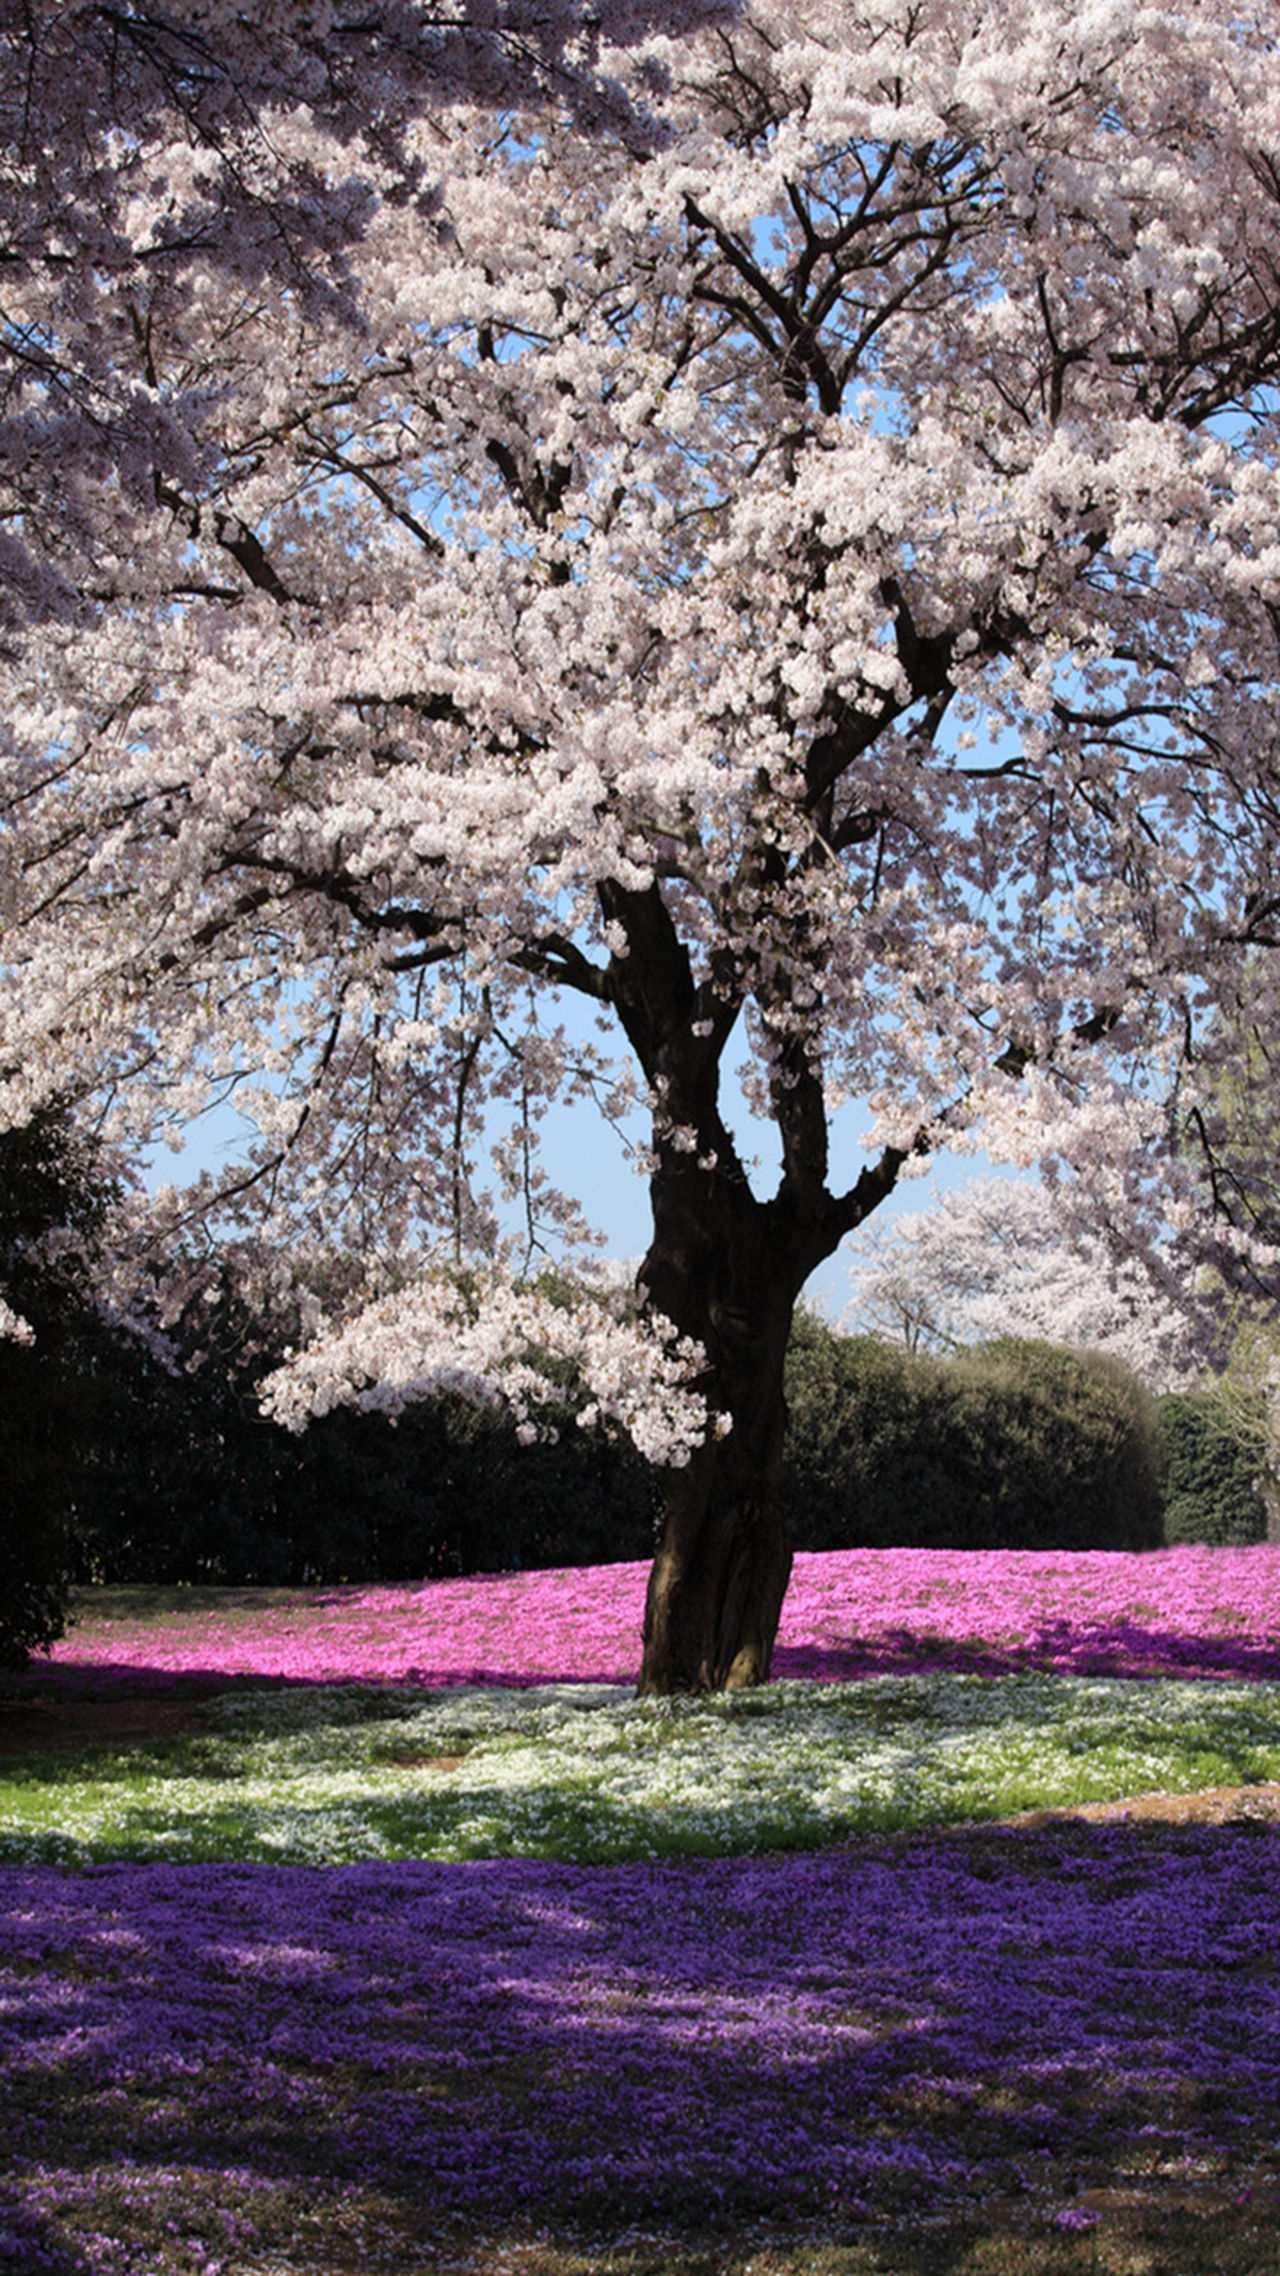 Tree Branch Beauty In Nature Growth Flower Grass Nature Freshness Tree Trunk Tranquility Tranquil Scene Scenics Blossom Pink Color Springtime Park - Man Made Space Field Day Cherry Tree Fragility EyeEmBestPics First Eyeem Photo Izmir/ Bornova EyeEm Nature Lover Multi Colored